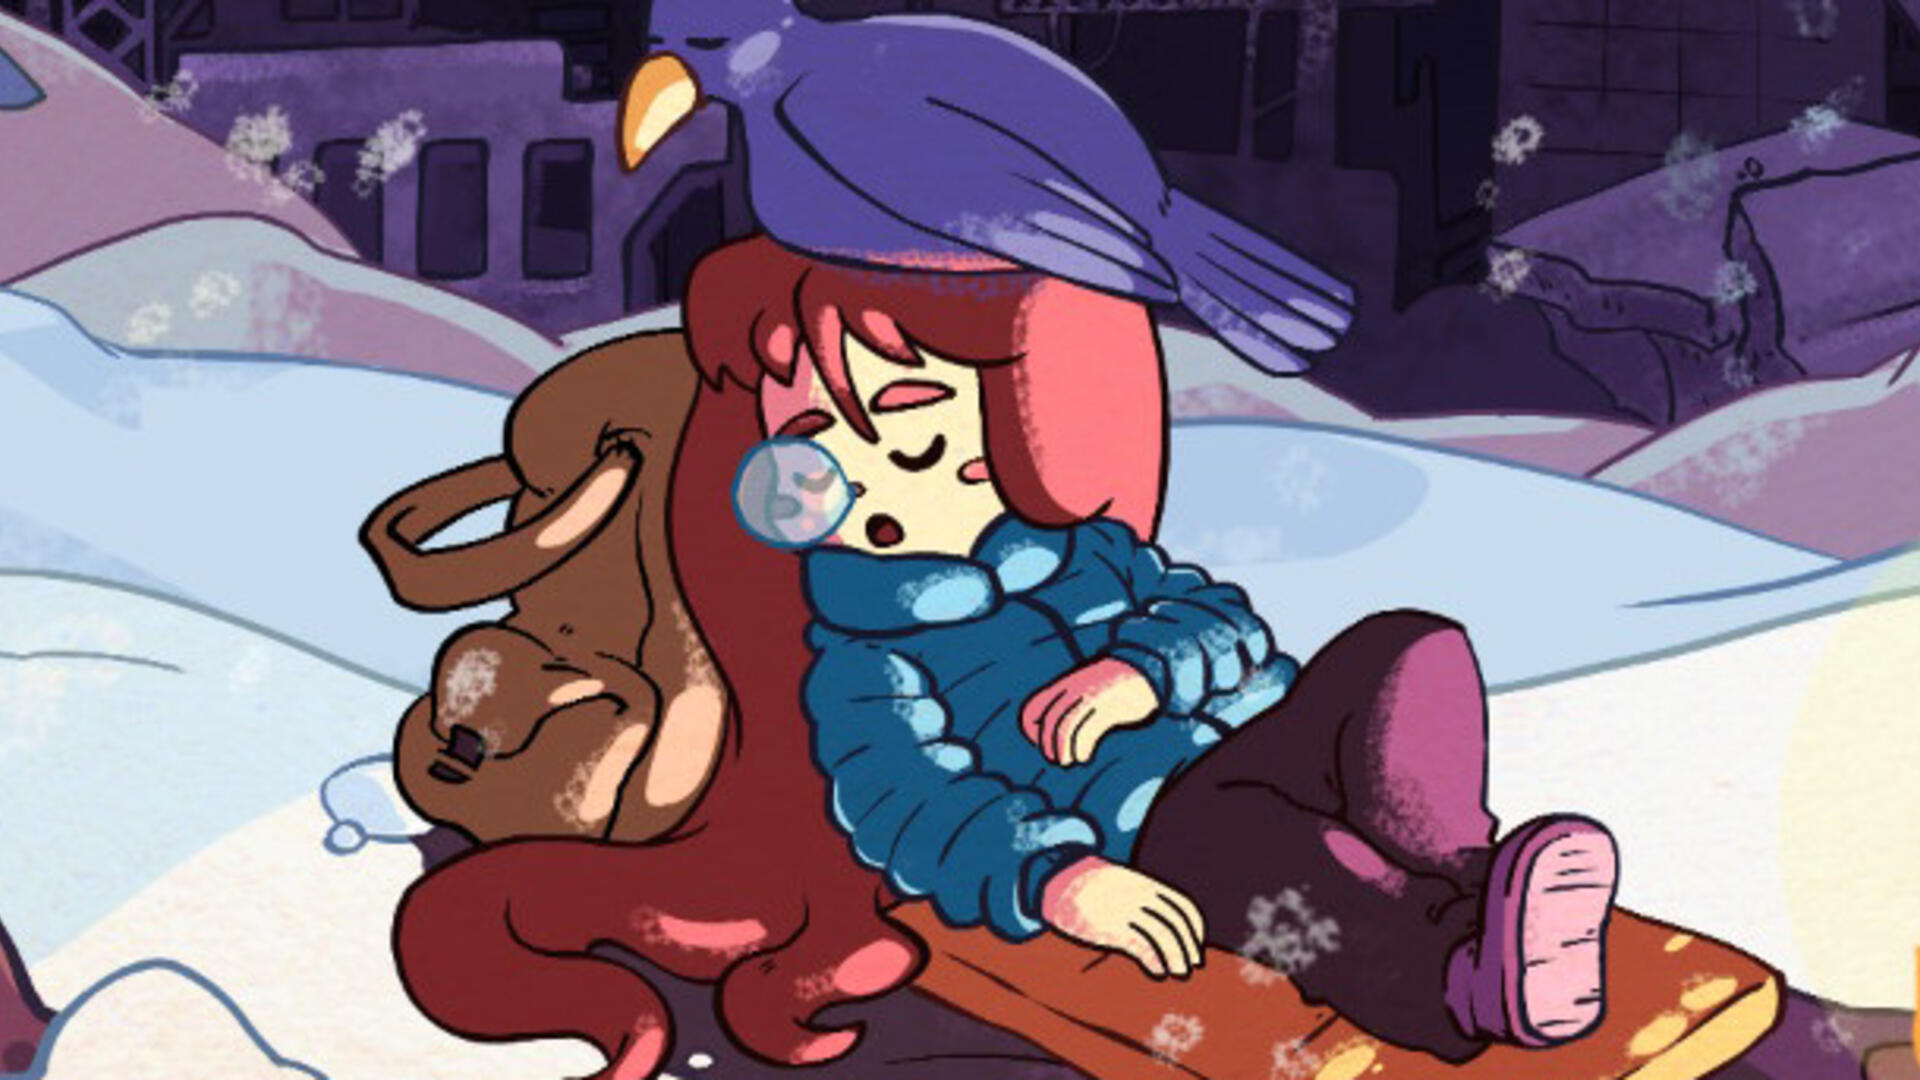 Celeste Will be Available Free Through Xbox Games With Gold Next Month